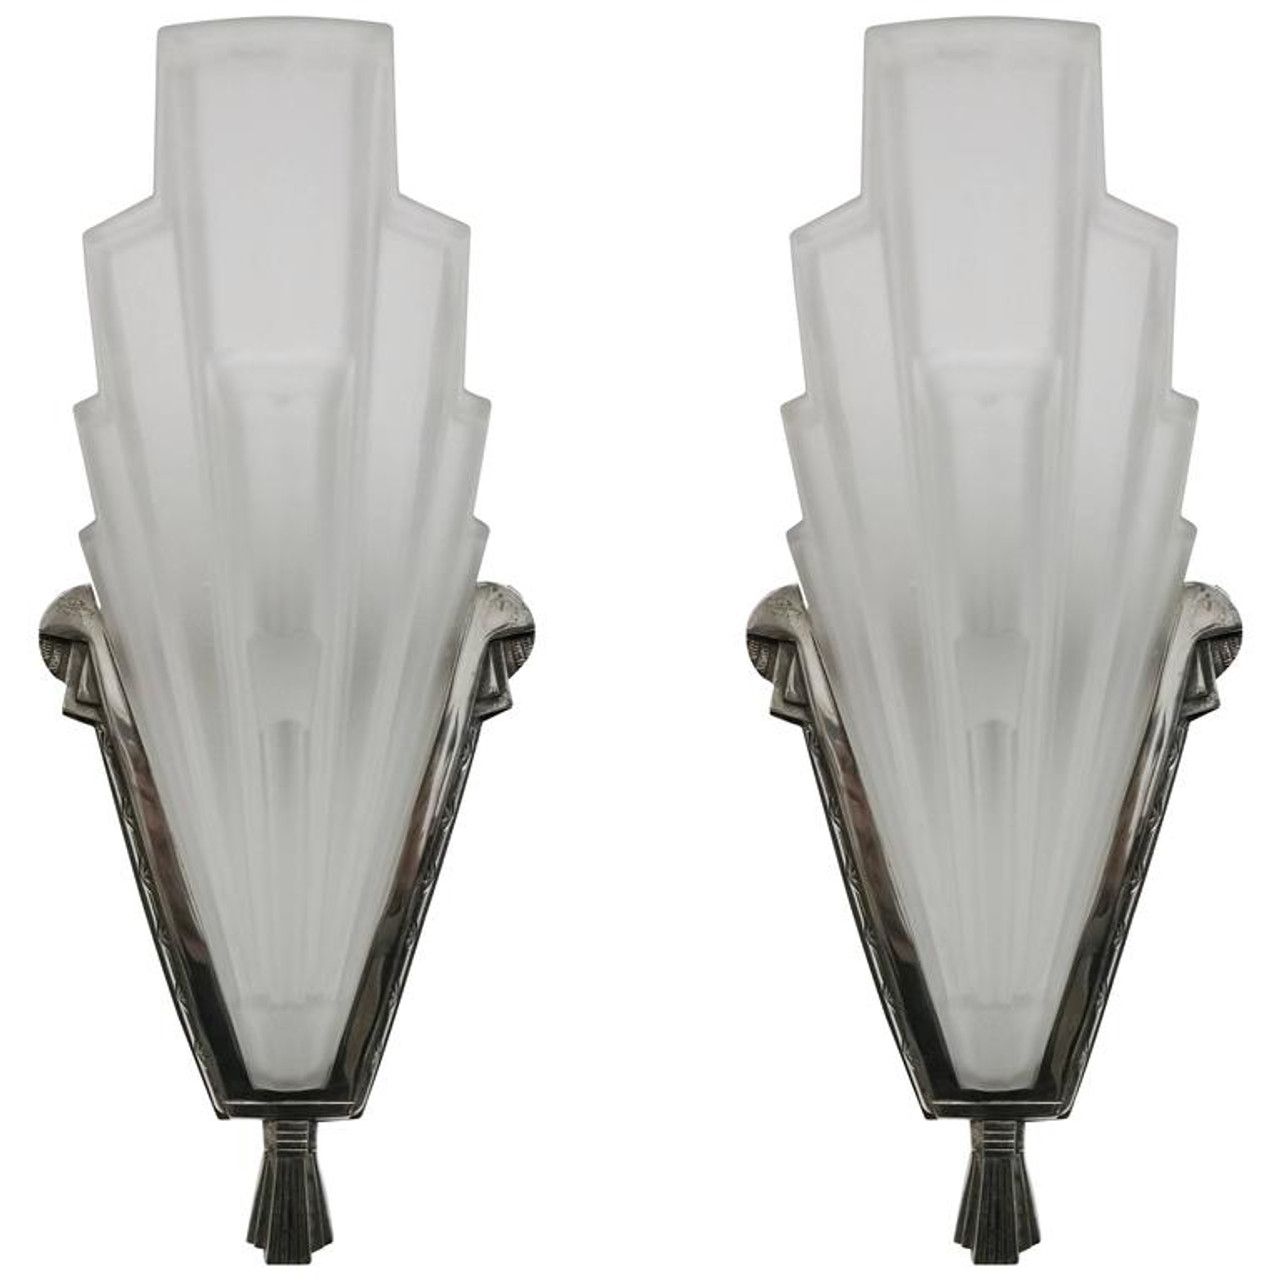 Pair Of French Art Deco Wall Sconces By Hanots Lampem